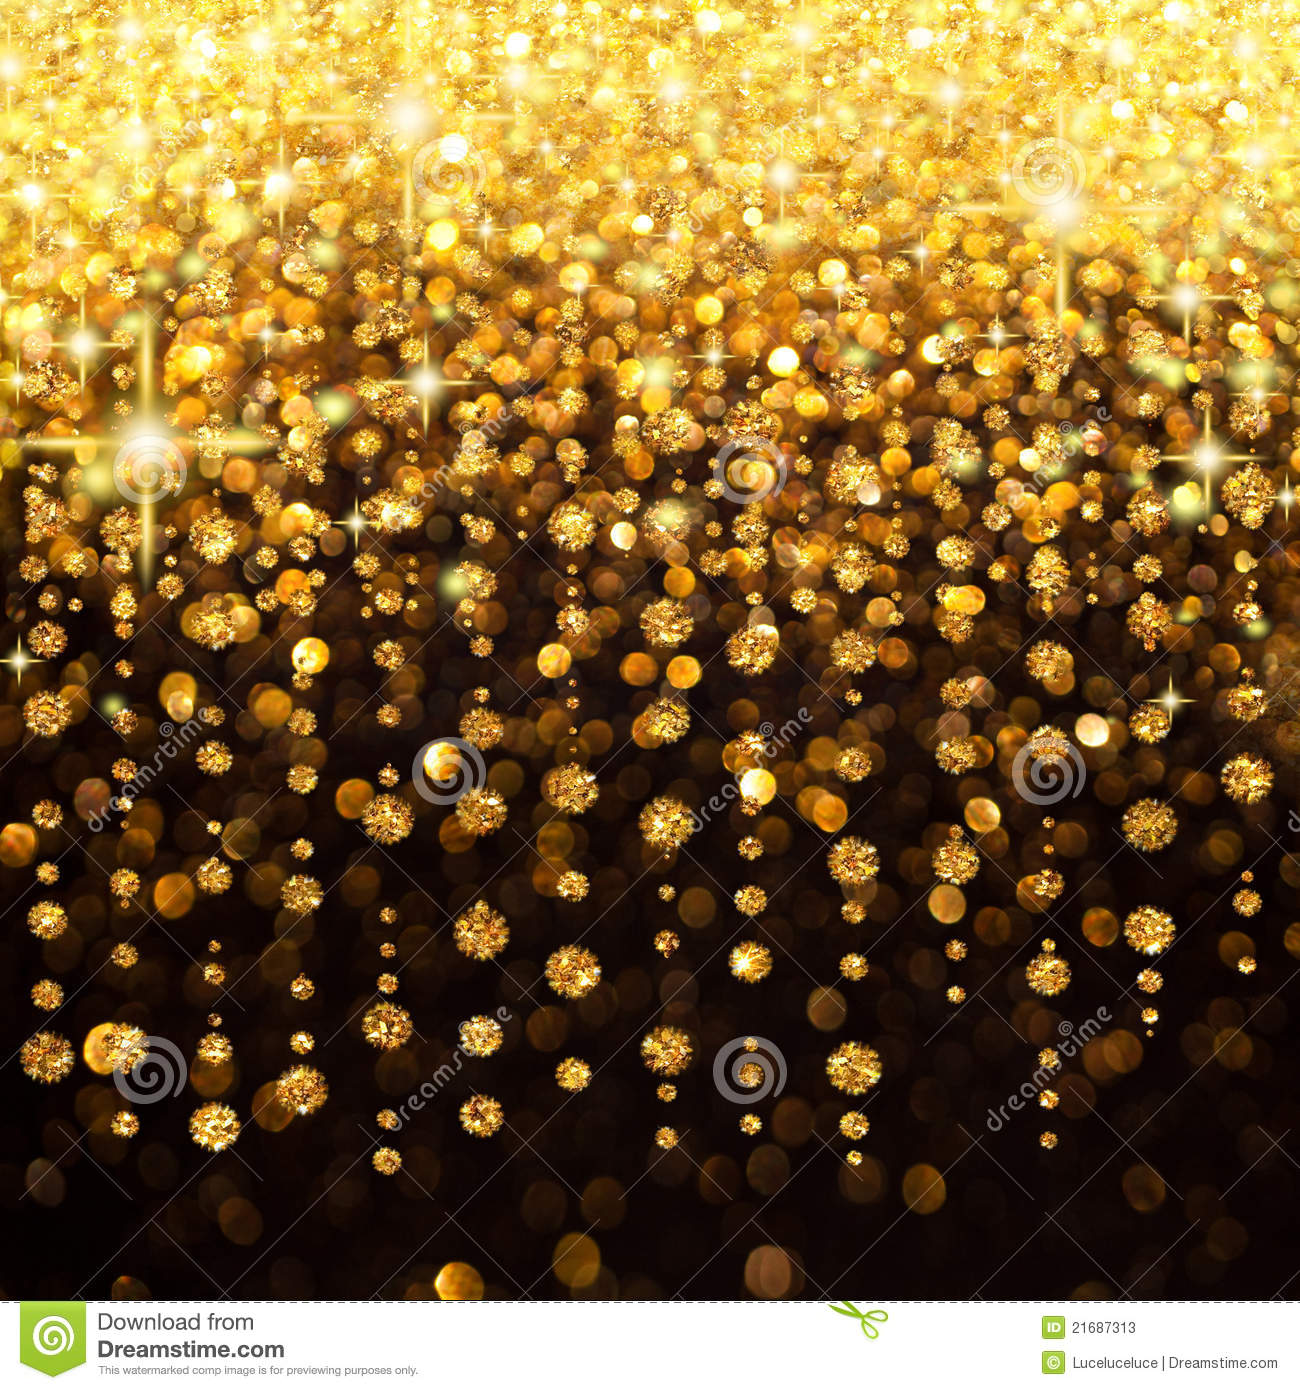 3d Colour Wallpaper Free Download Rain Of Lights Christmas Or Party Background Stock Photos